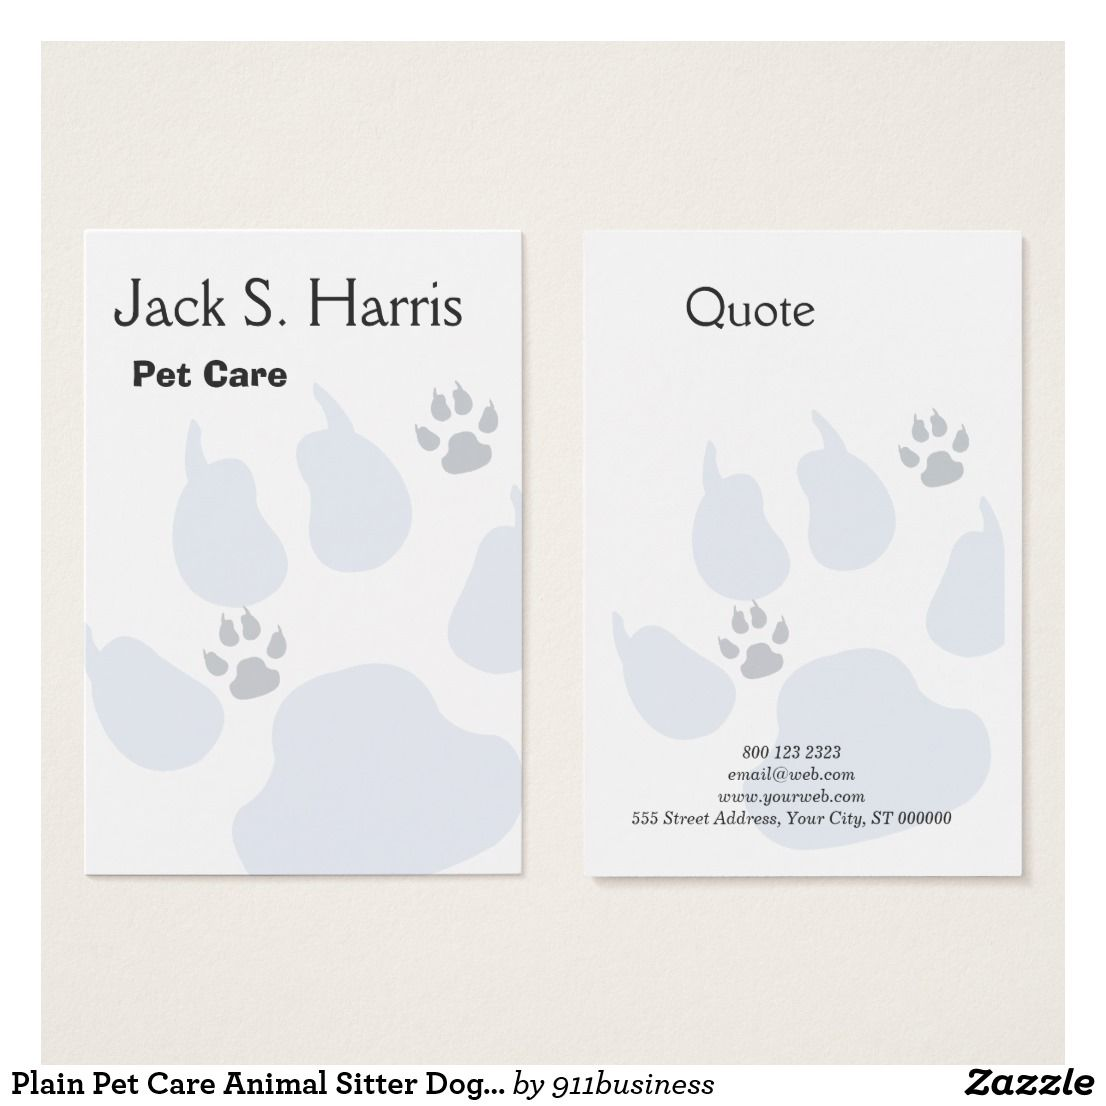 Plain Pet Care Animal Sitter Dog Cat Paw Prints Business Card Zazzle Com Cat Paw Print Printing Business Cards Pet Care